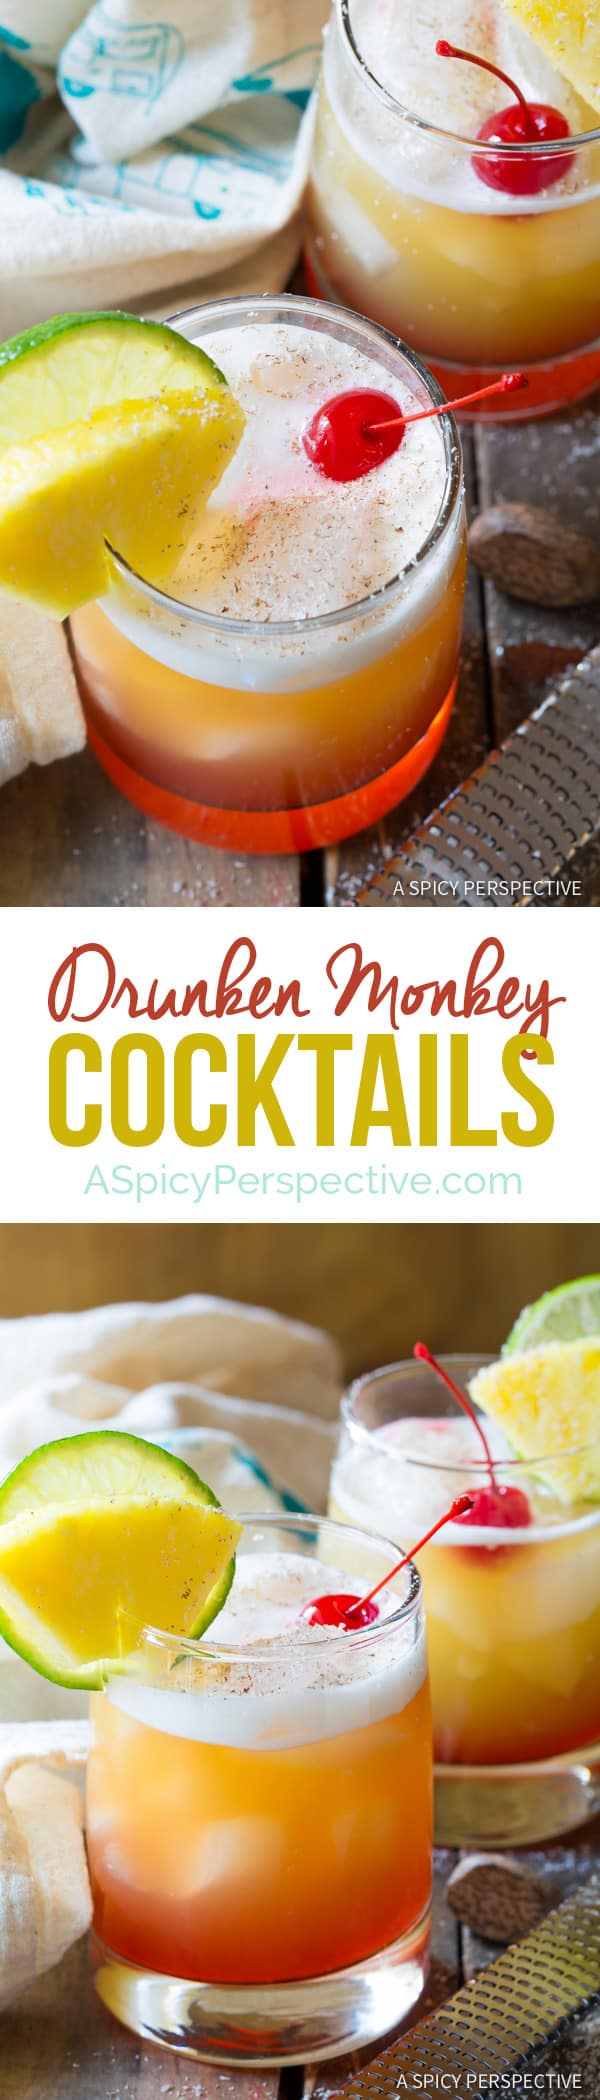 The Drunken Monkey Cocktail | ASpicyPerspective.com